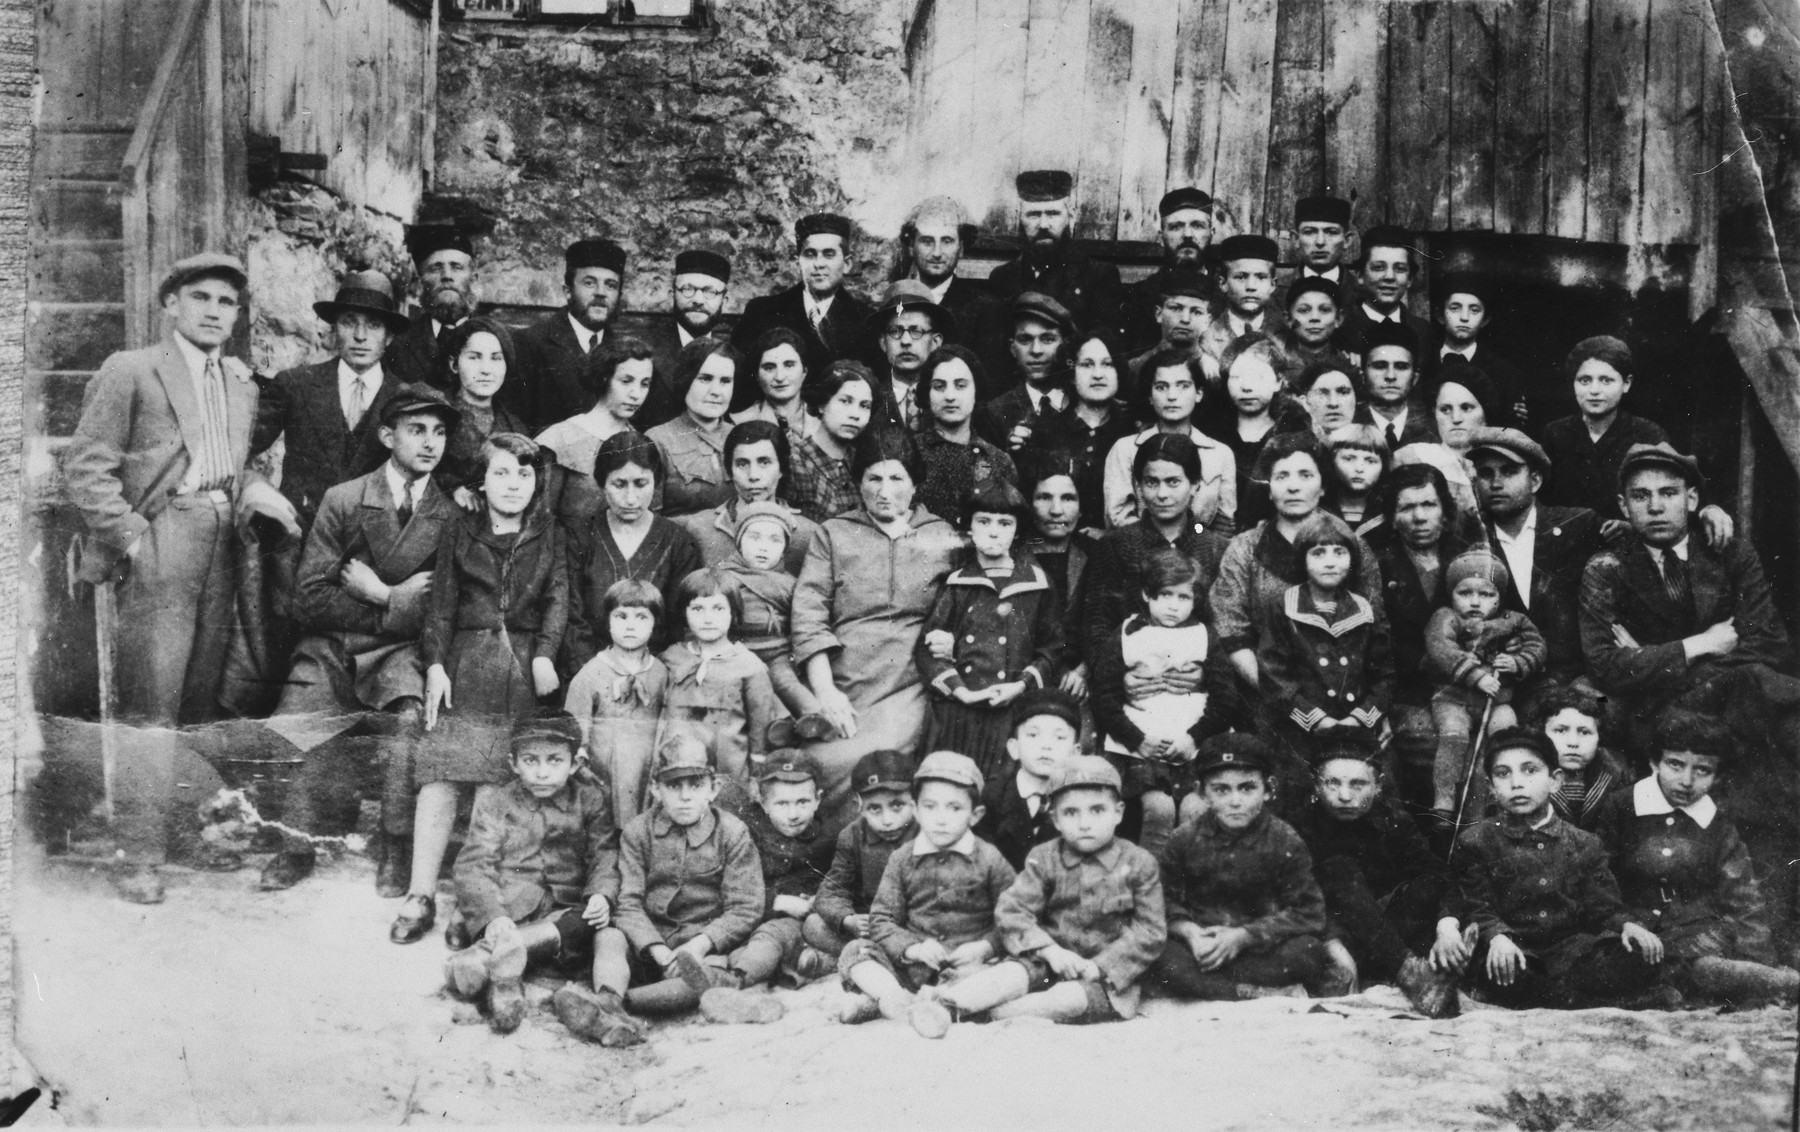 Group portrait of the extended family of Mottle Leichter in Janow Podlaski, Poland.    The photo was taken on the occasion of the departure of one family member to Palestine.  Only three of those pictured survived the Holocaust, including two who left Poland before the war.